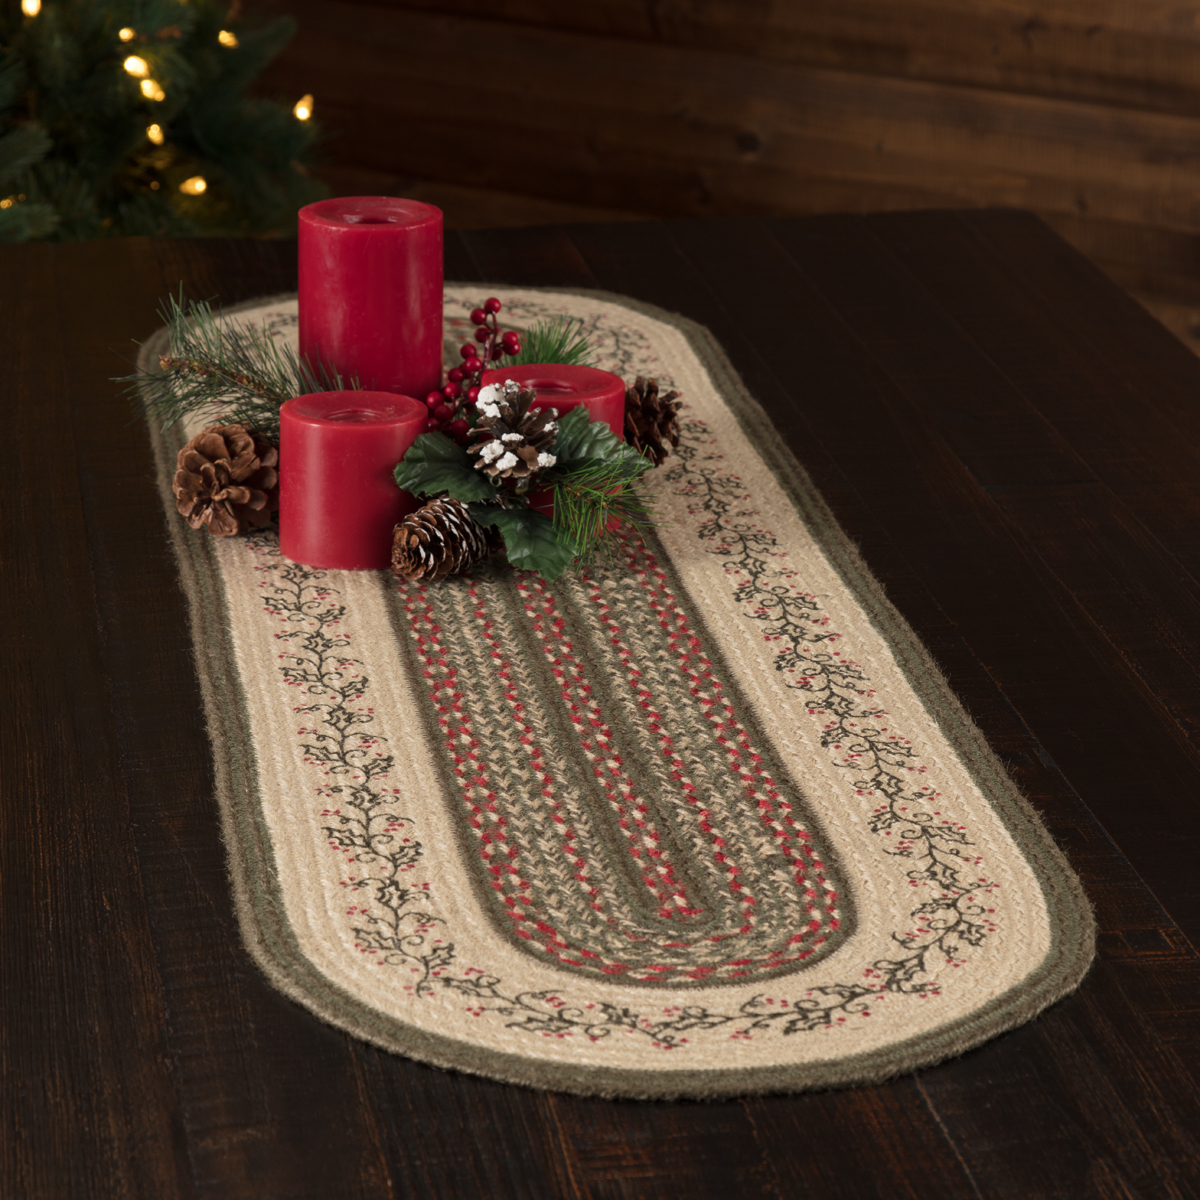 Holly Berry jute primitive Christmas table runner at The Weed Patch